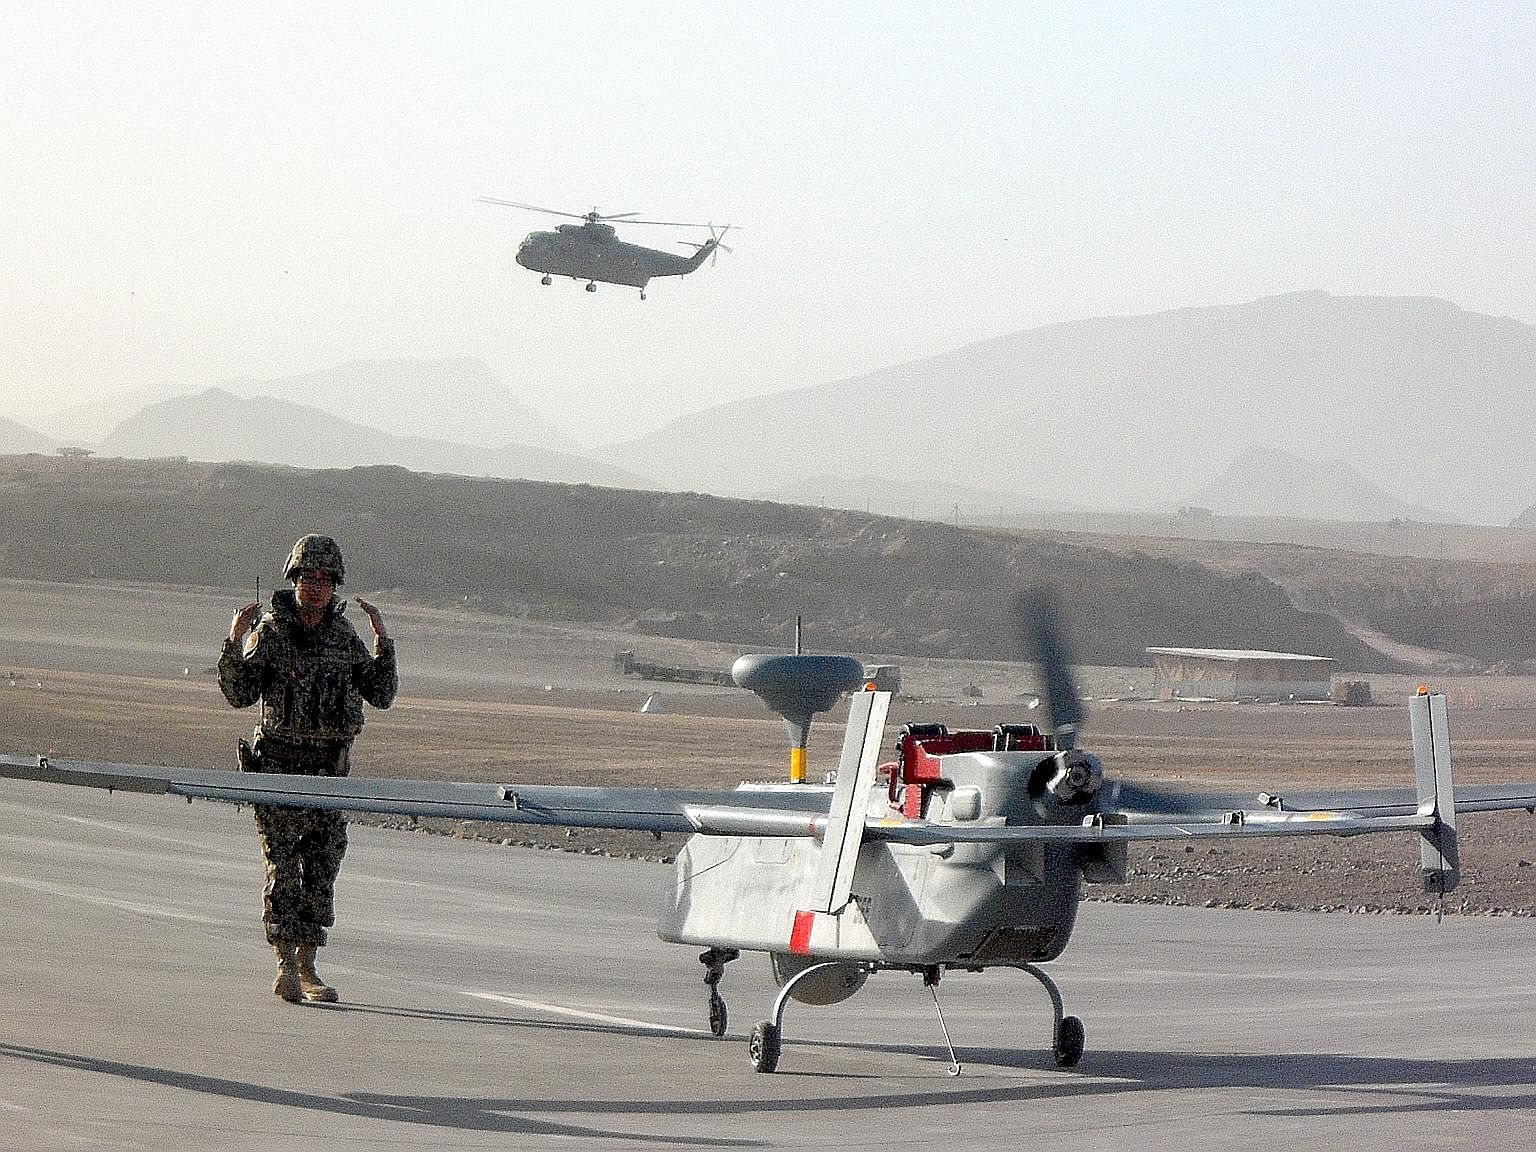 A Searcher UAV being prepared for take-off in Afghanistan. The RSAF's UAV team, which was deployed in the war zone from August to November 2010, was tasked with providing surveillance and reconnaissance for international forces there.